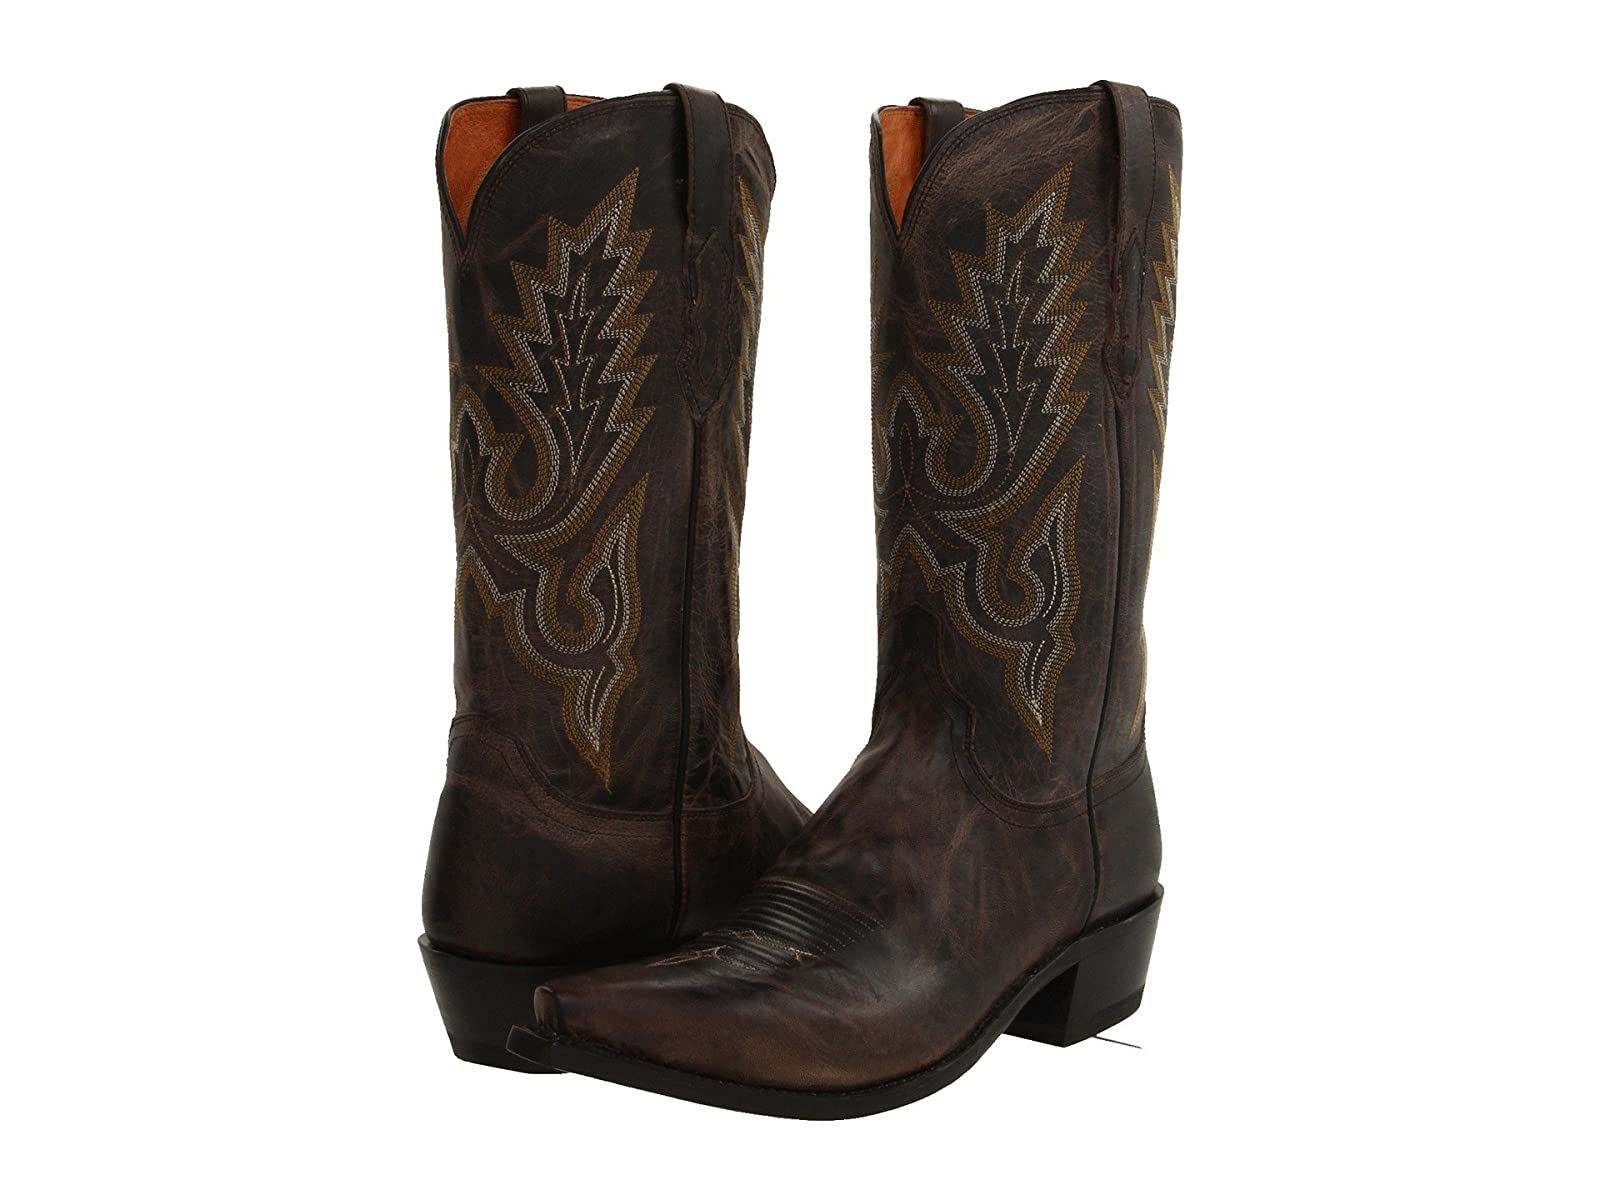 Lucchese M1001Affordable and distinctive shoes